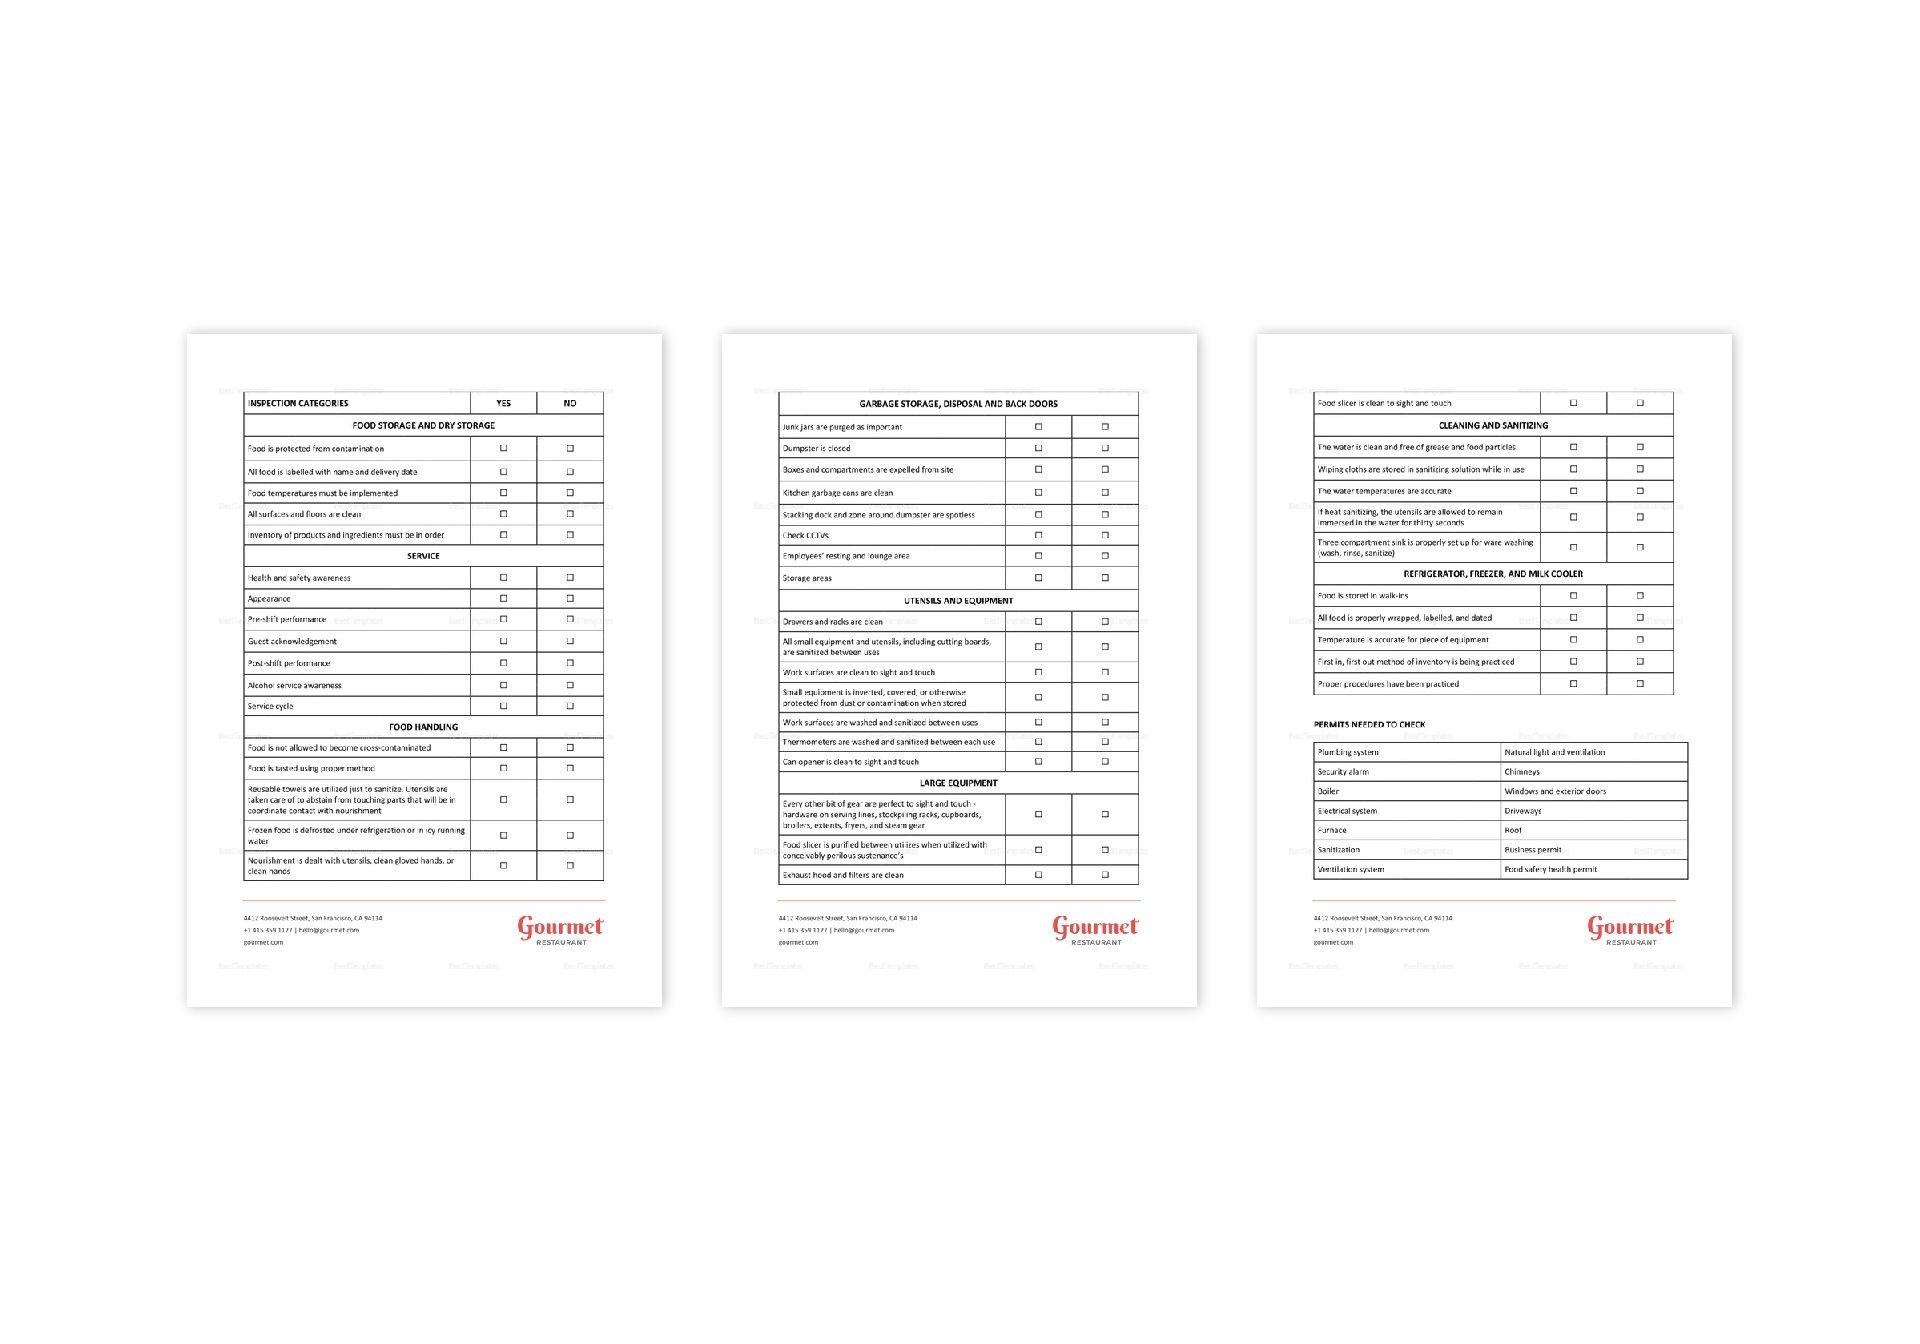 Restaurant Employee Pre-Termination Checklist Template in